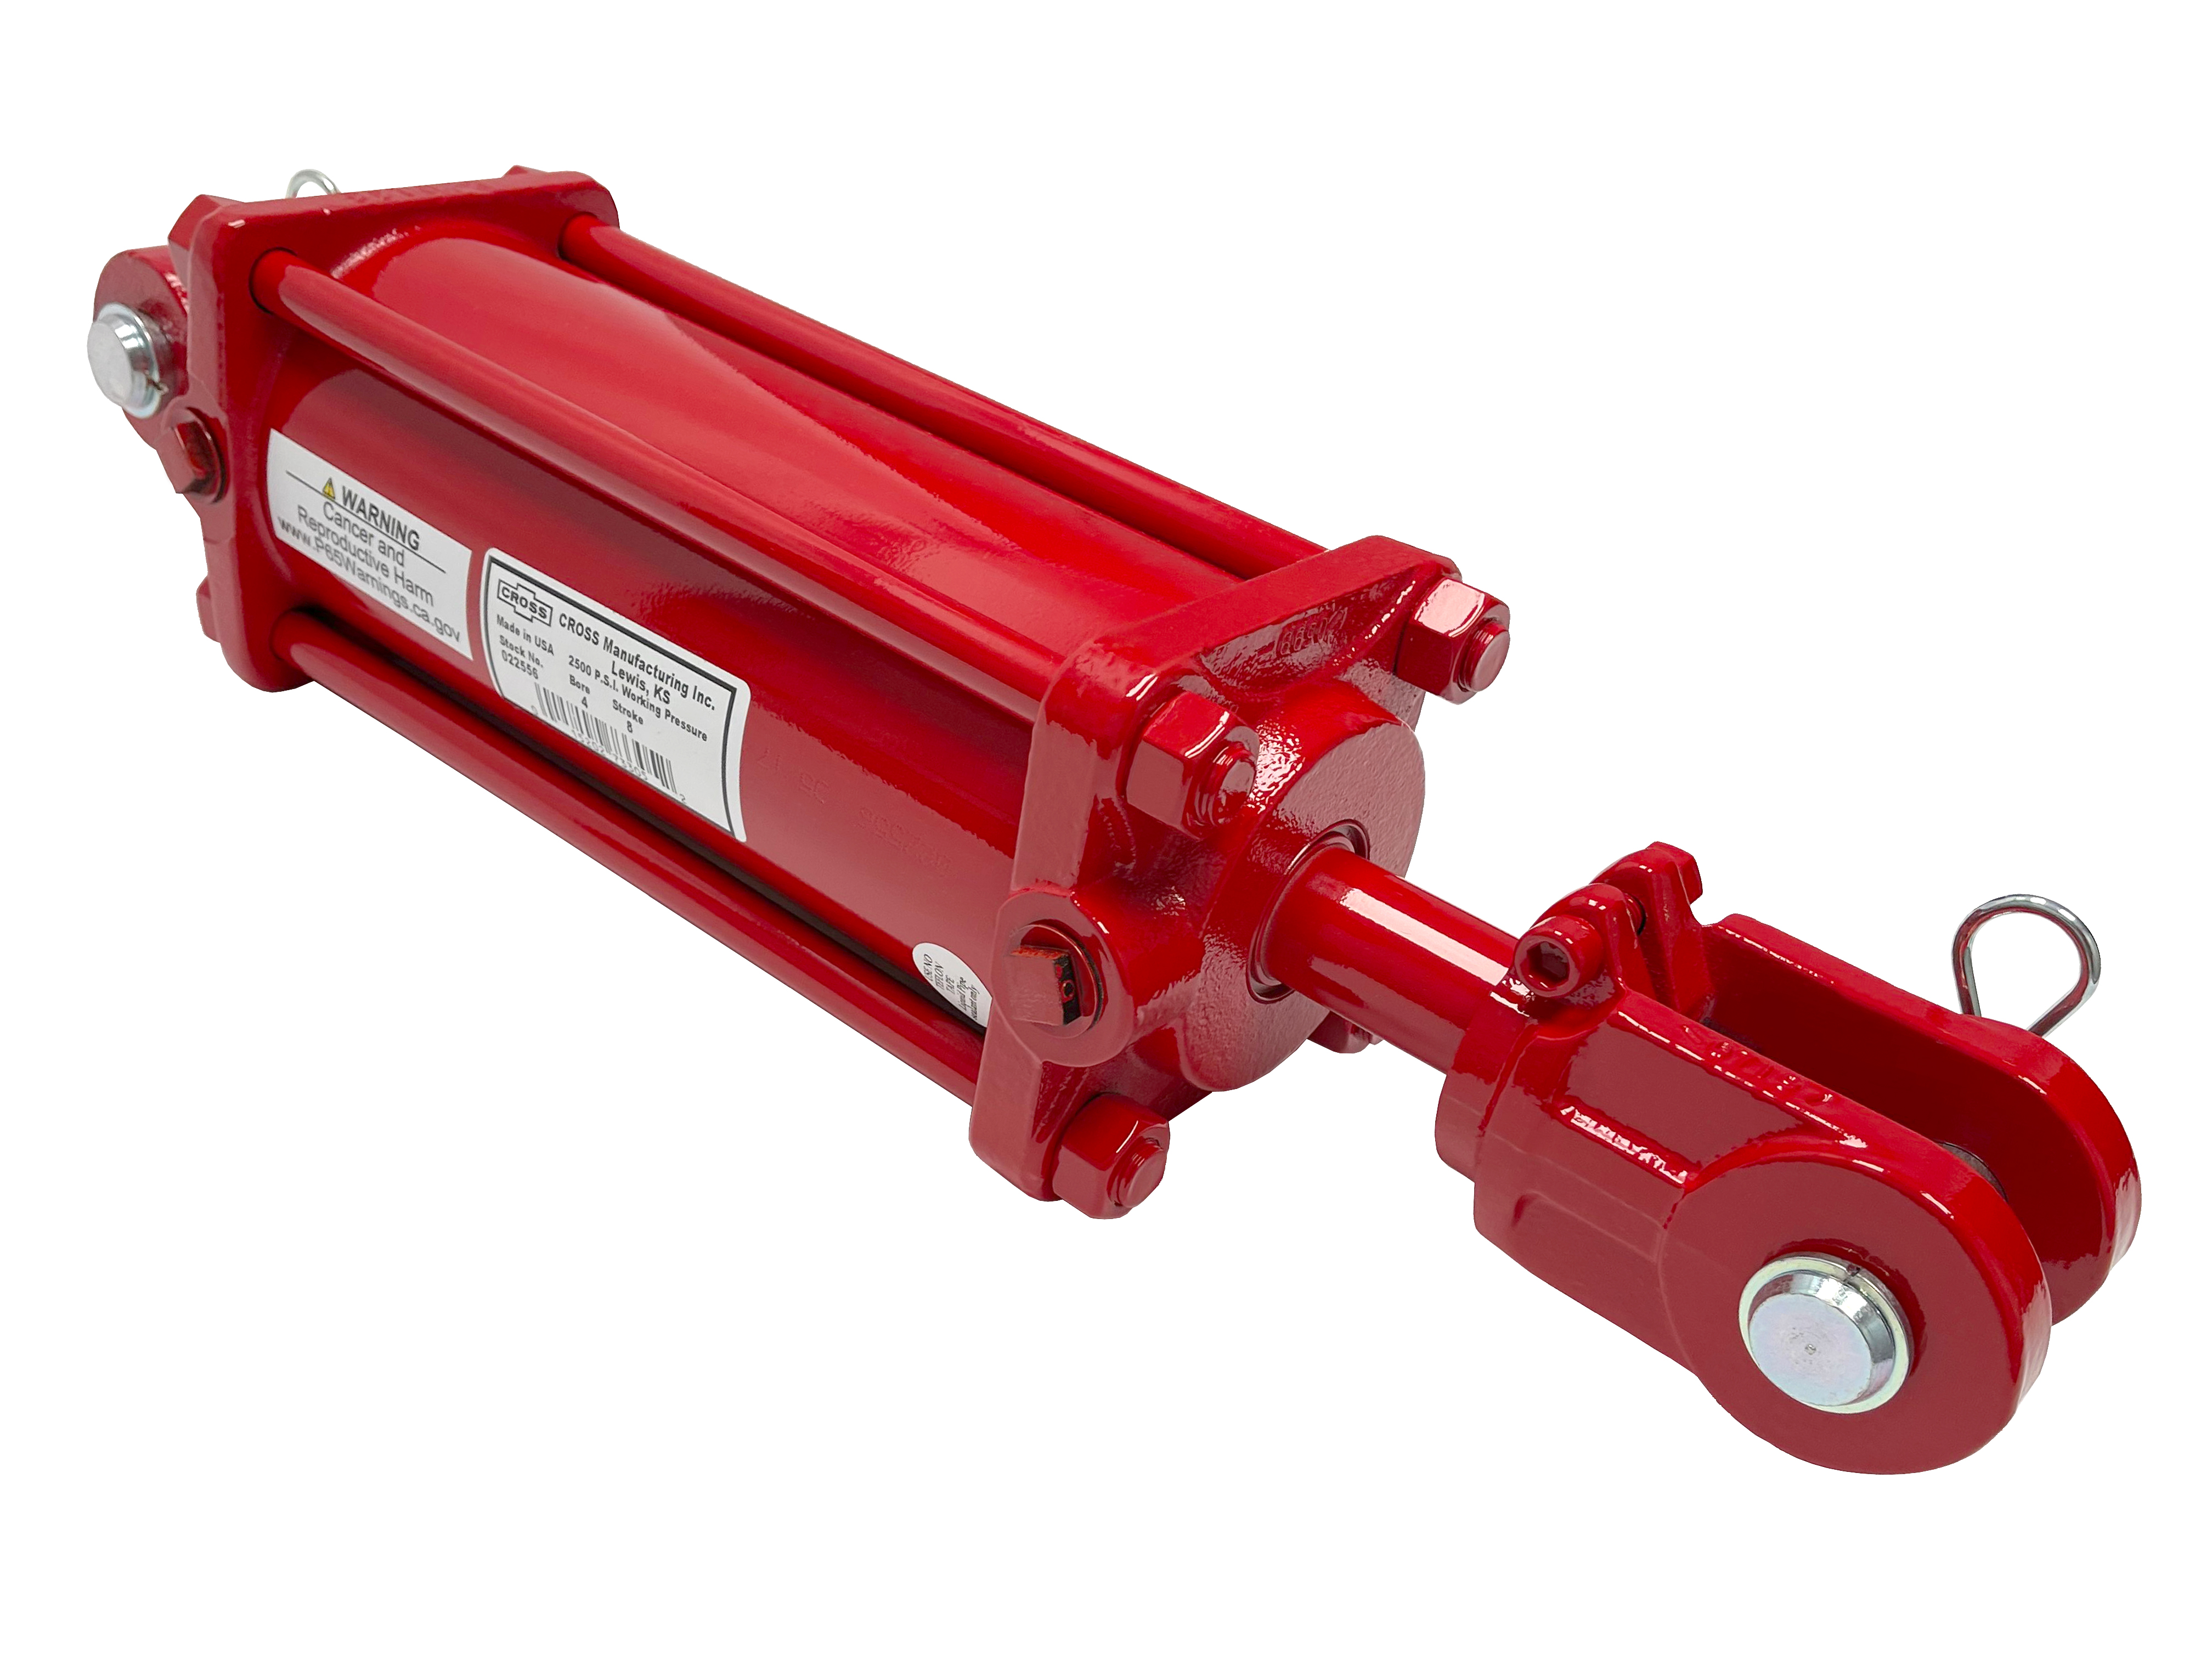 3.5 bore x 8 stroke CROSS rephasing hydraulic cylinder, tie rod double acting cylinder DR series | CROSS MANUFACTURING